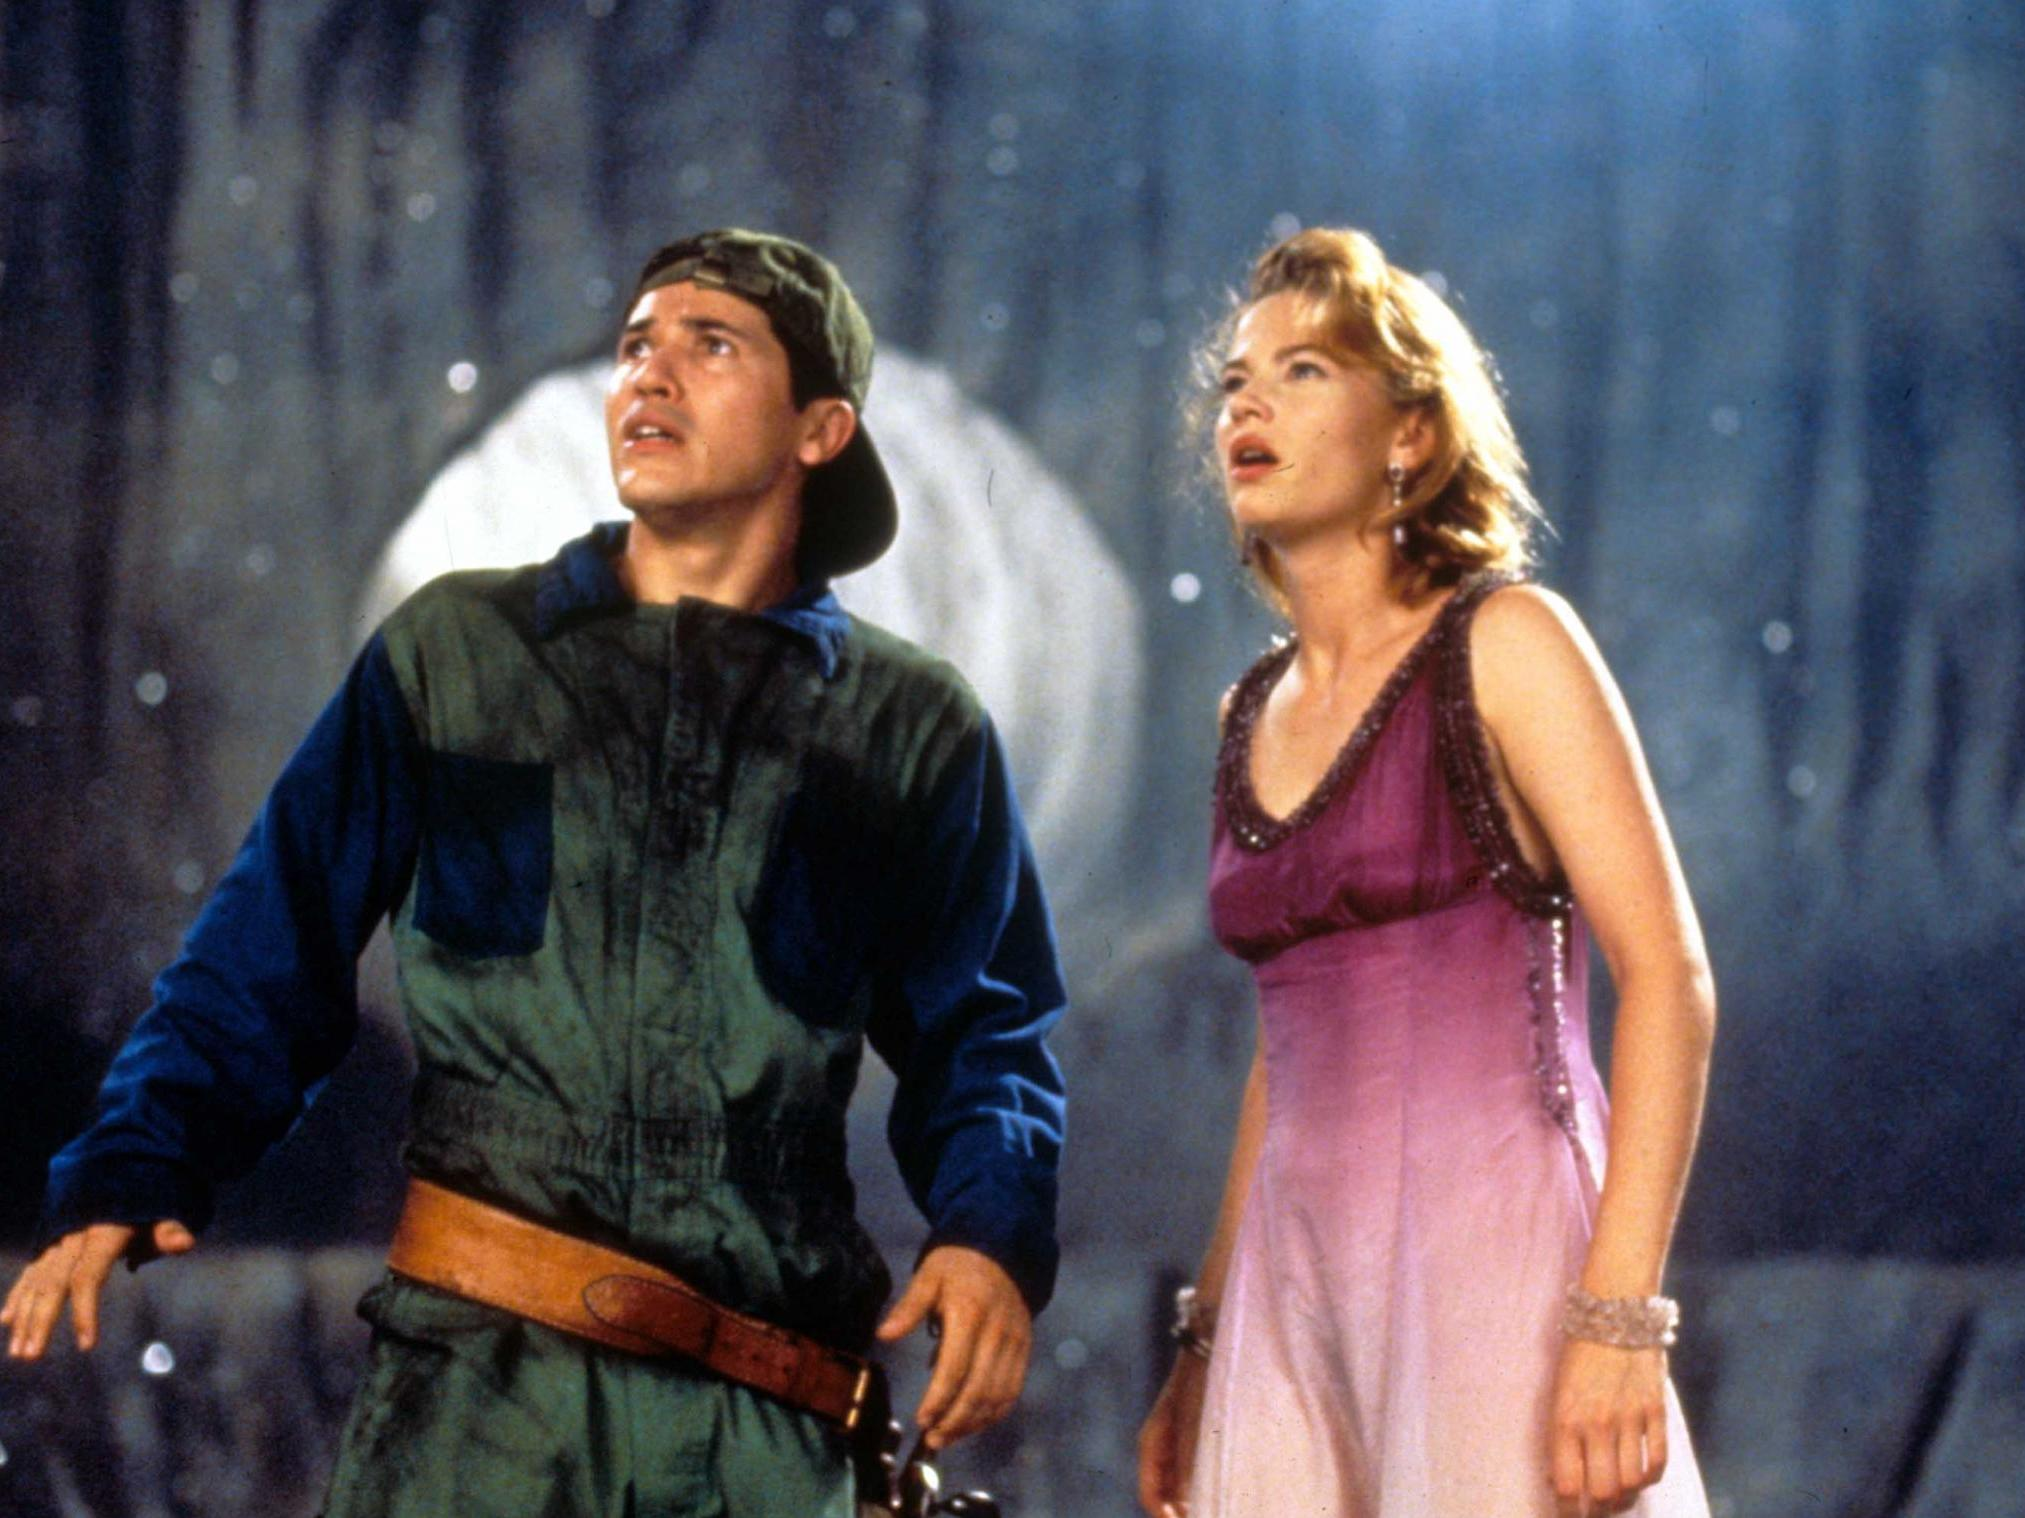 How Super Mario Bros Doomed Video Game Movies For A Generation